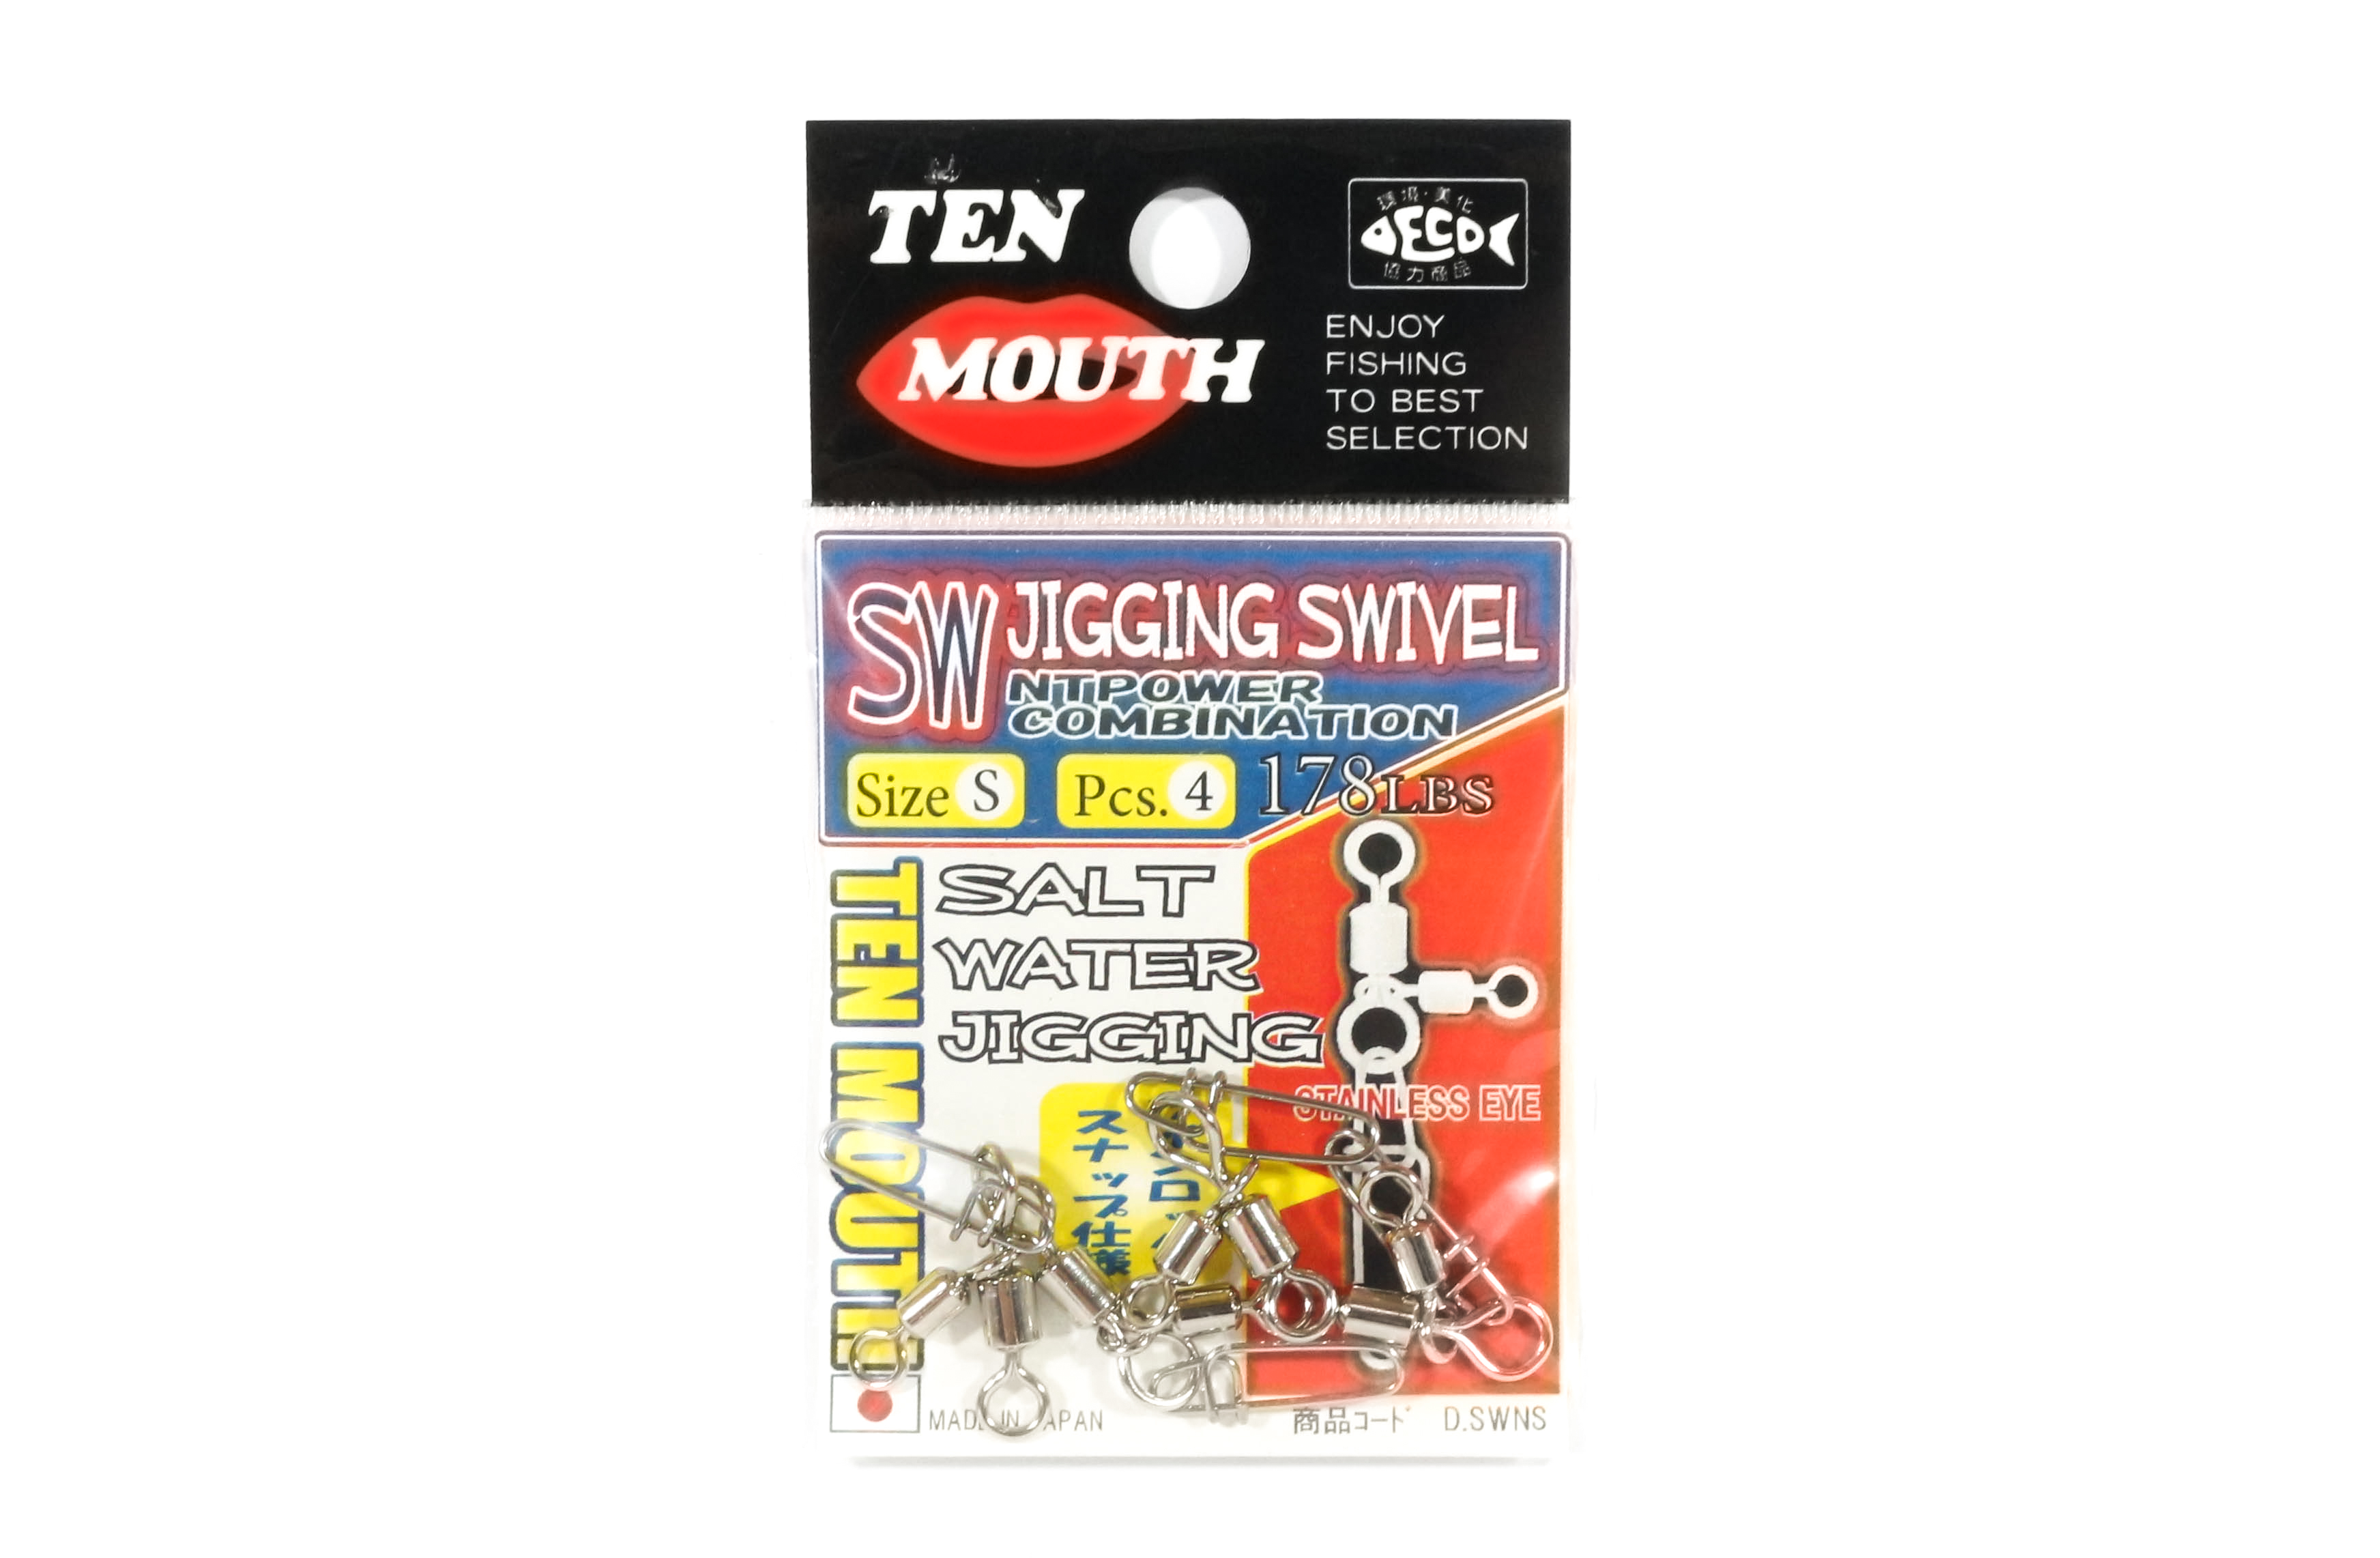 Ten Mouth Swivel SW Jigging Swivel D.SWN Size S (8933)